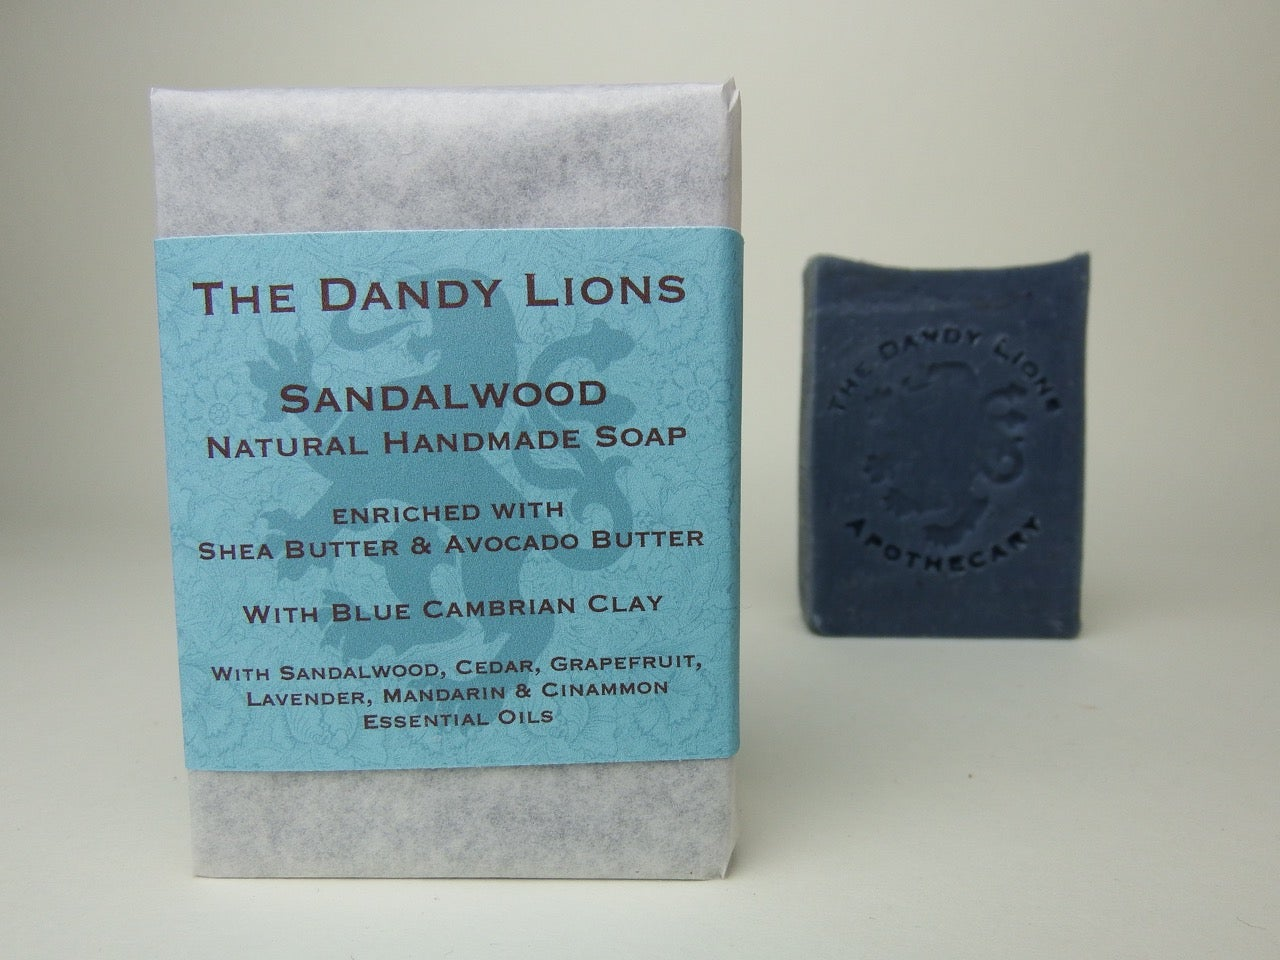 Image of Sandalwood Soap enriched with Shea and Avocado Butter